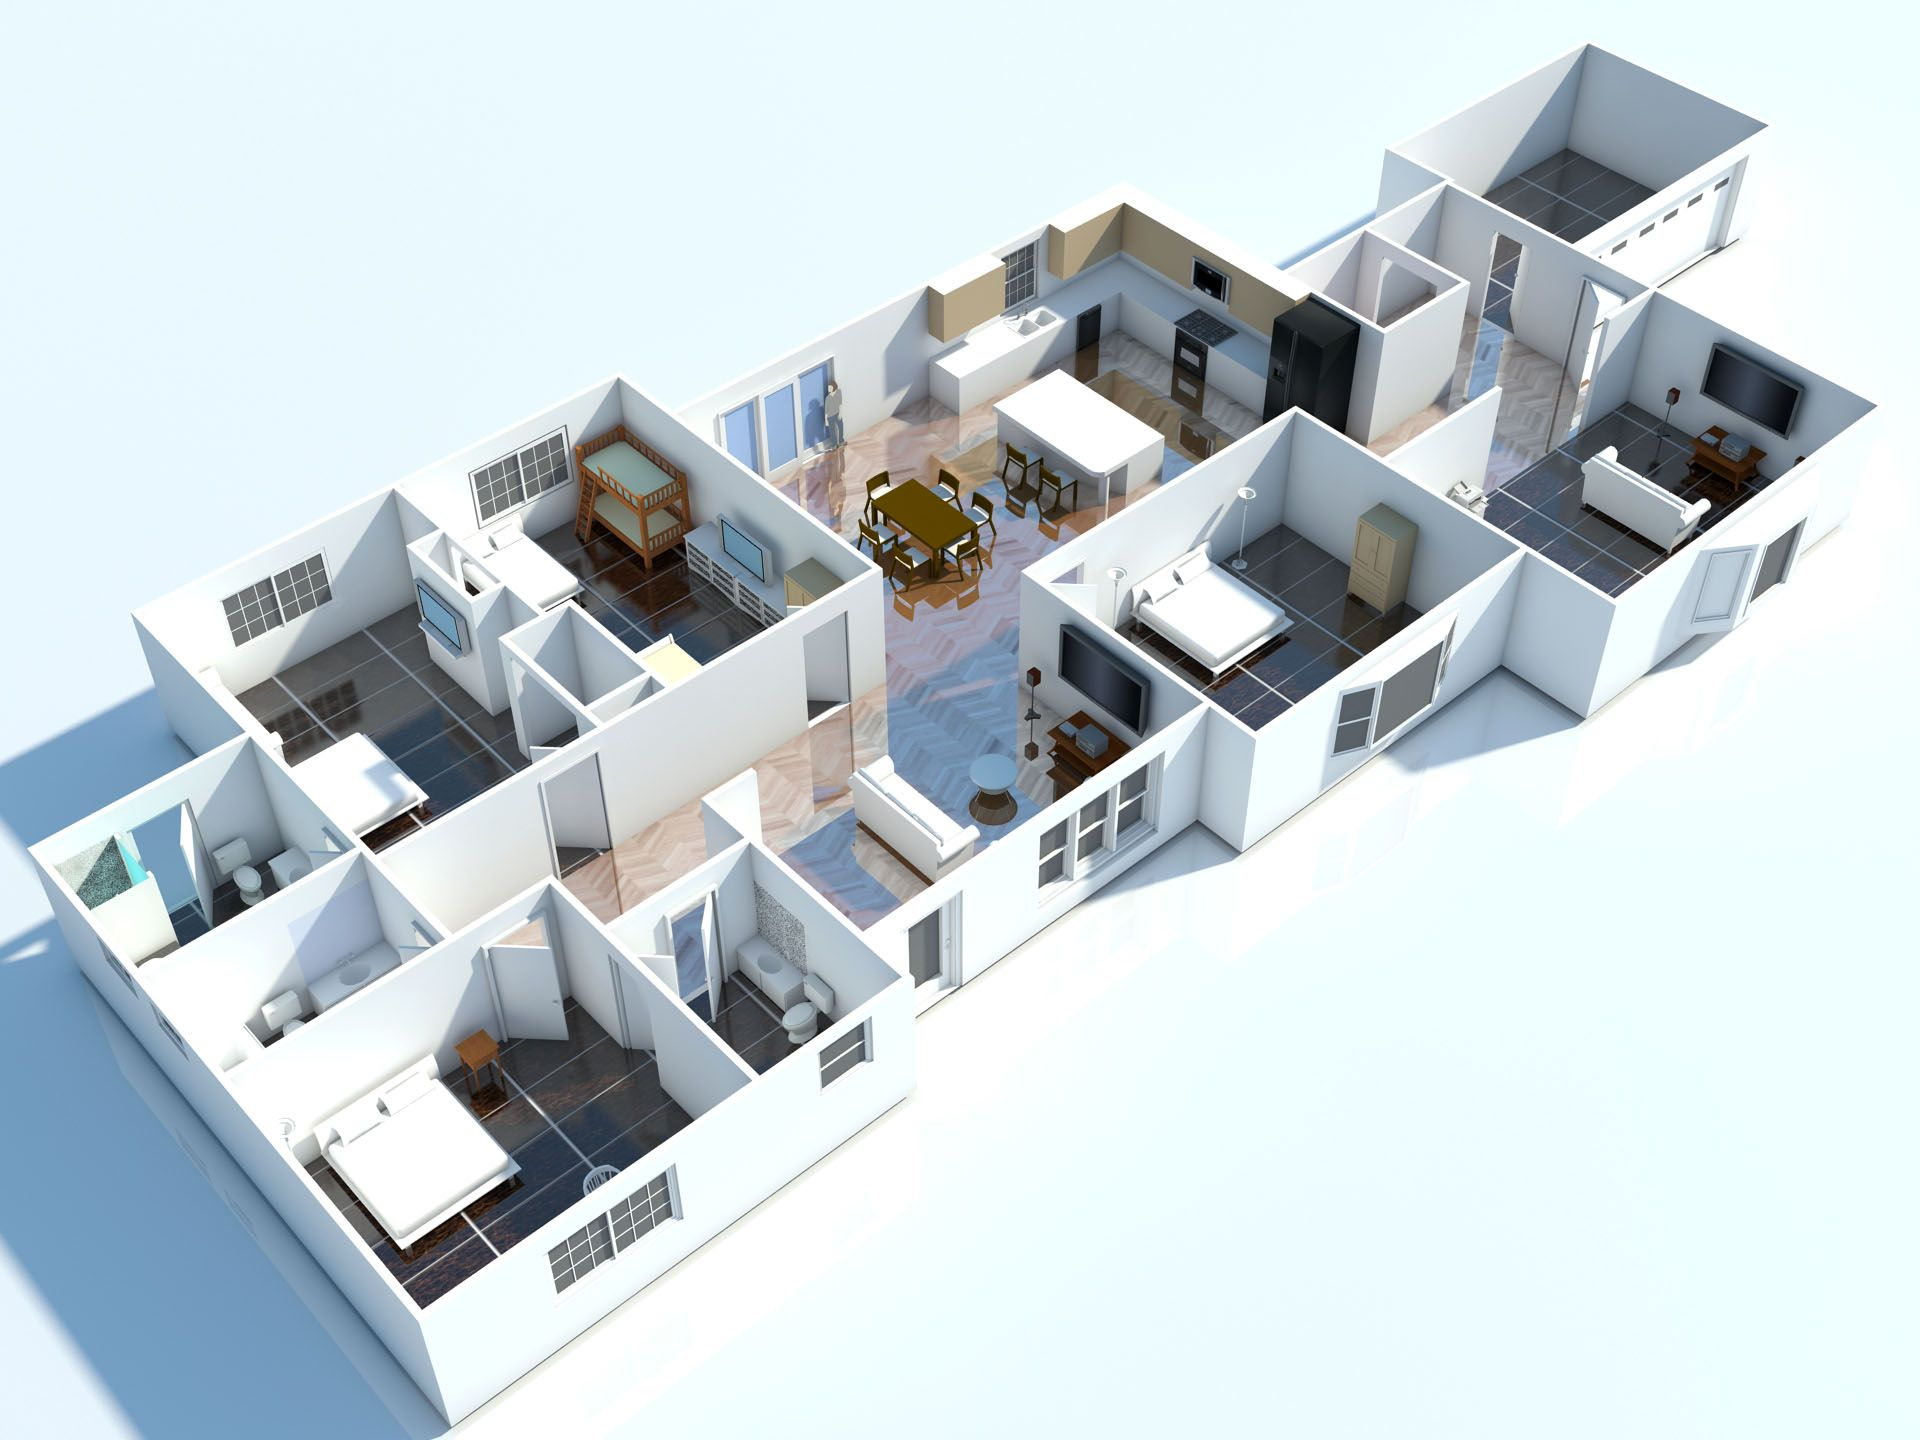 Modern Home Floor Plans With Floor Plan Design Software The Smart Way In Designing Home Floor Plans